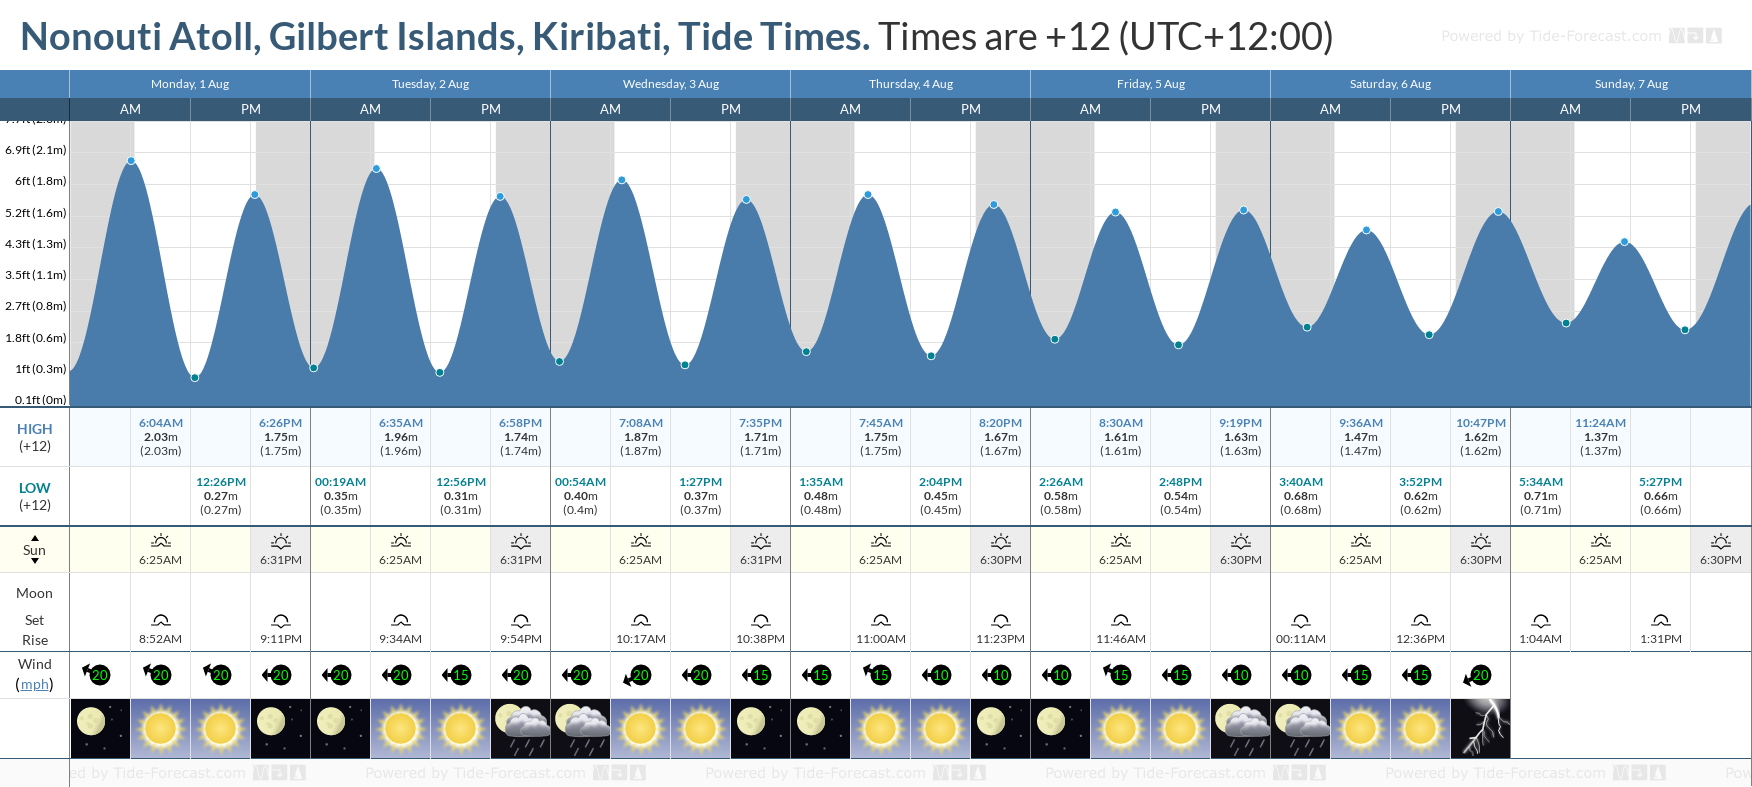 Nonouti Atoll, Gilbert Islands, Kiribati Tide Chart including high and low tide tide times for the next 7 days